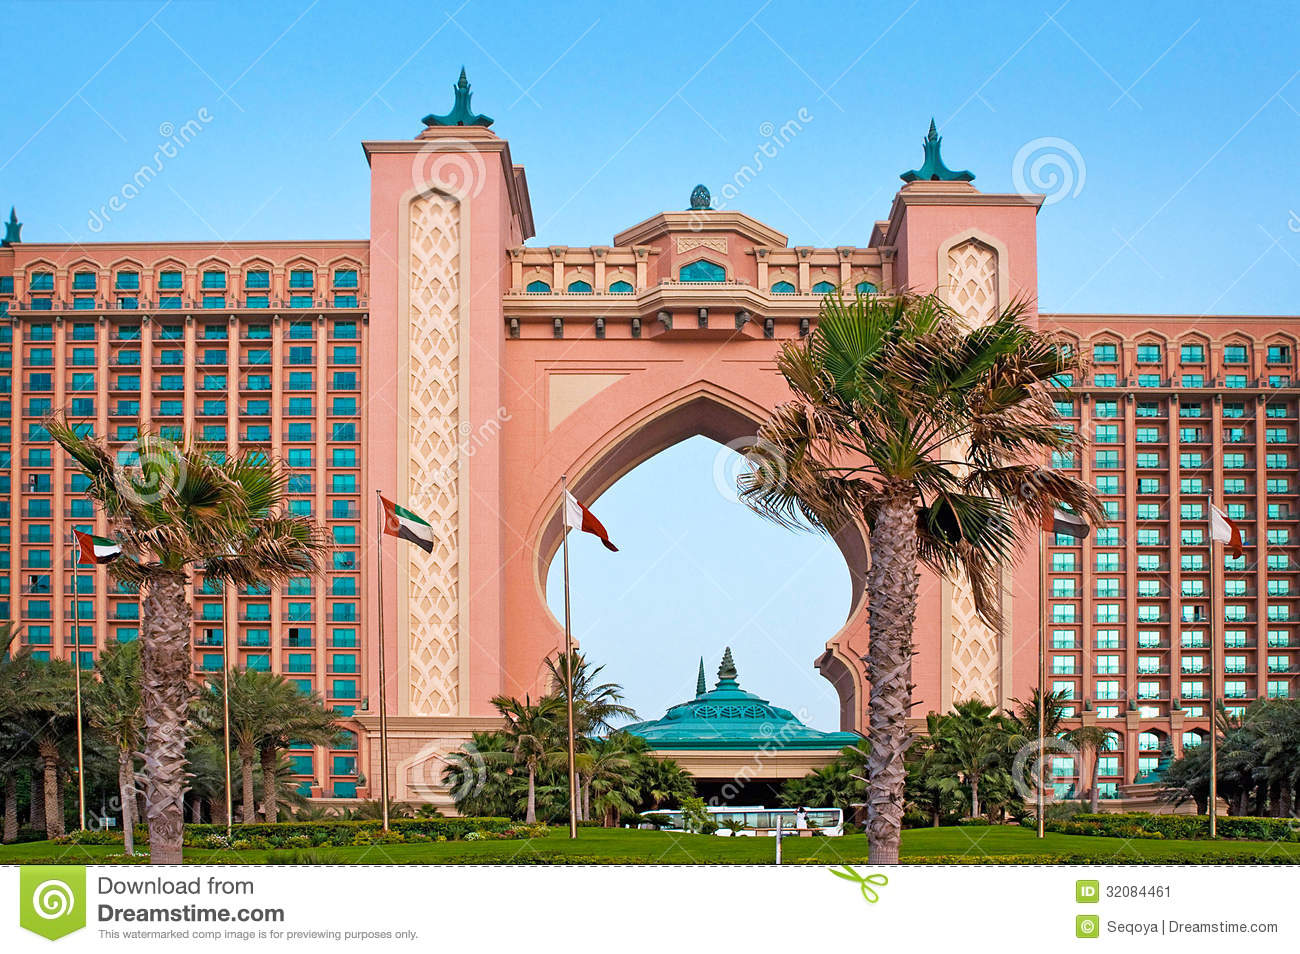 The famous atlantis hotel on the palm island on june 3 for Dubai world famous hotel